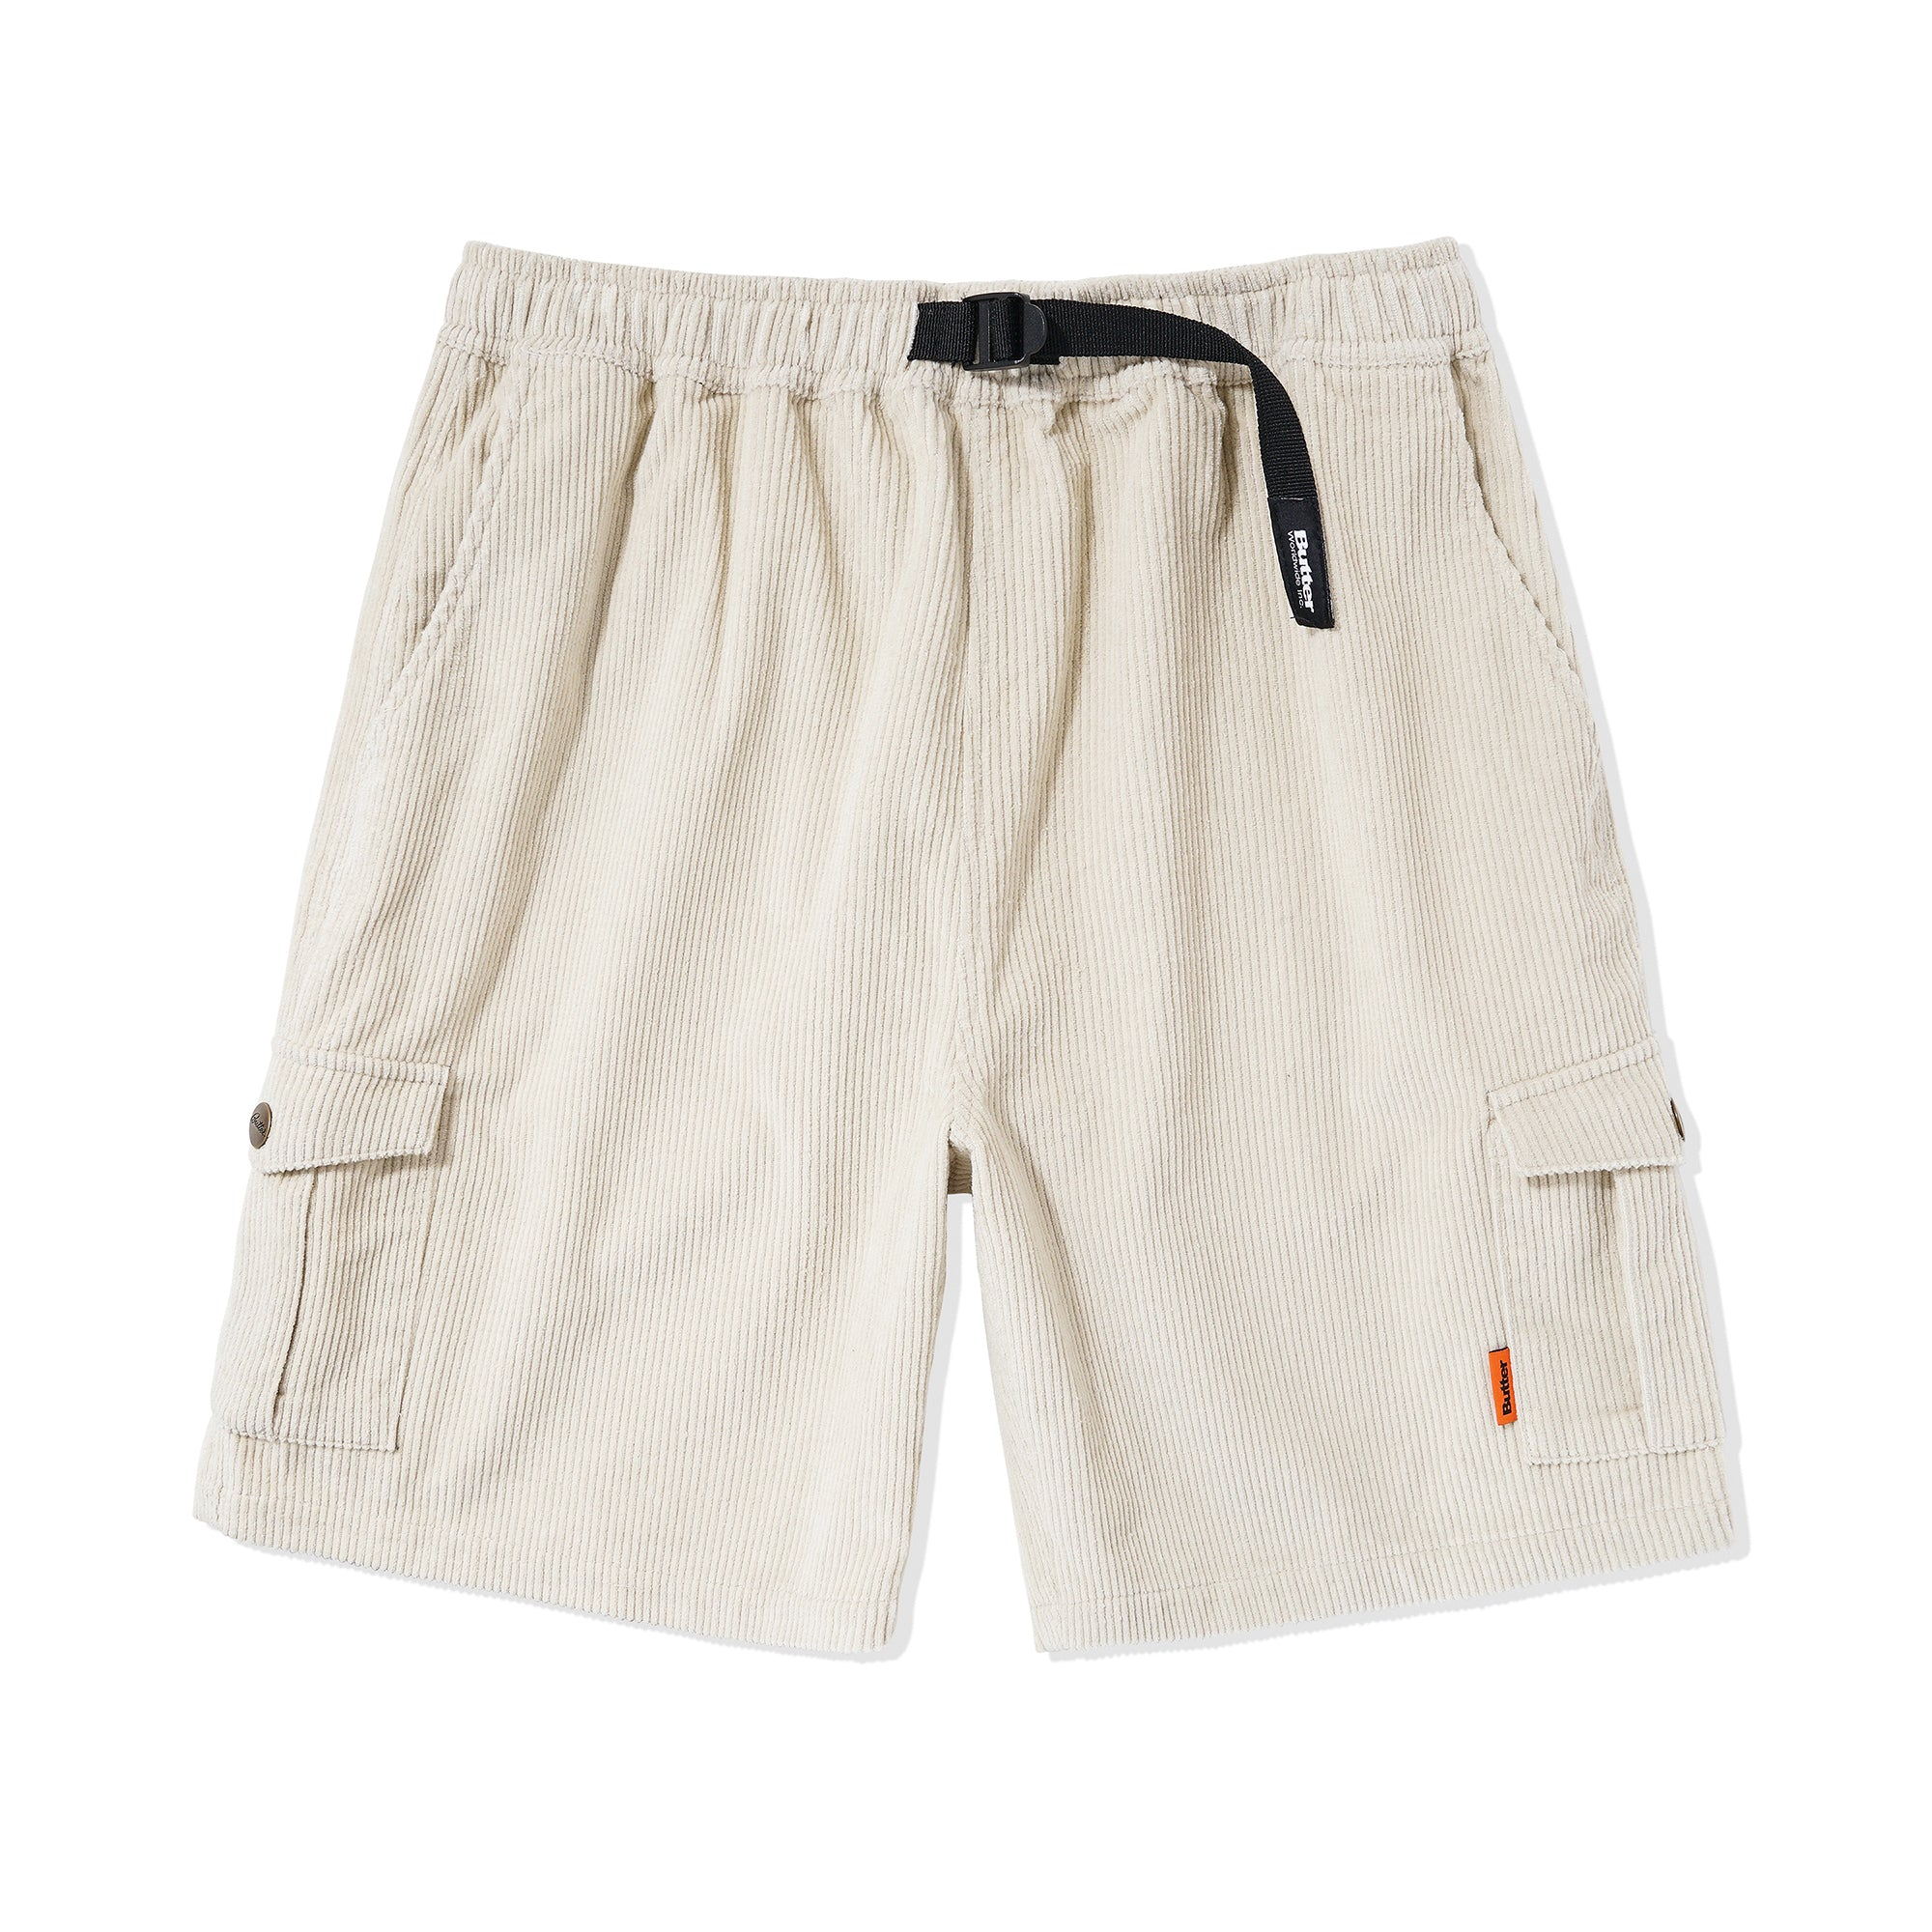 Butter Goods Corduroy Cargo Shorts Product Photo #1